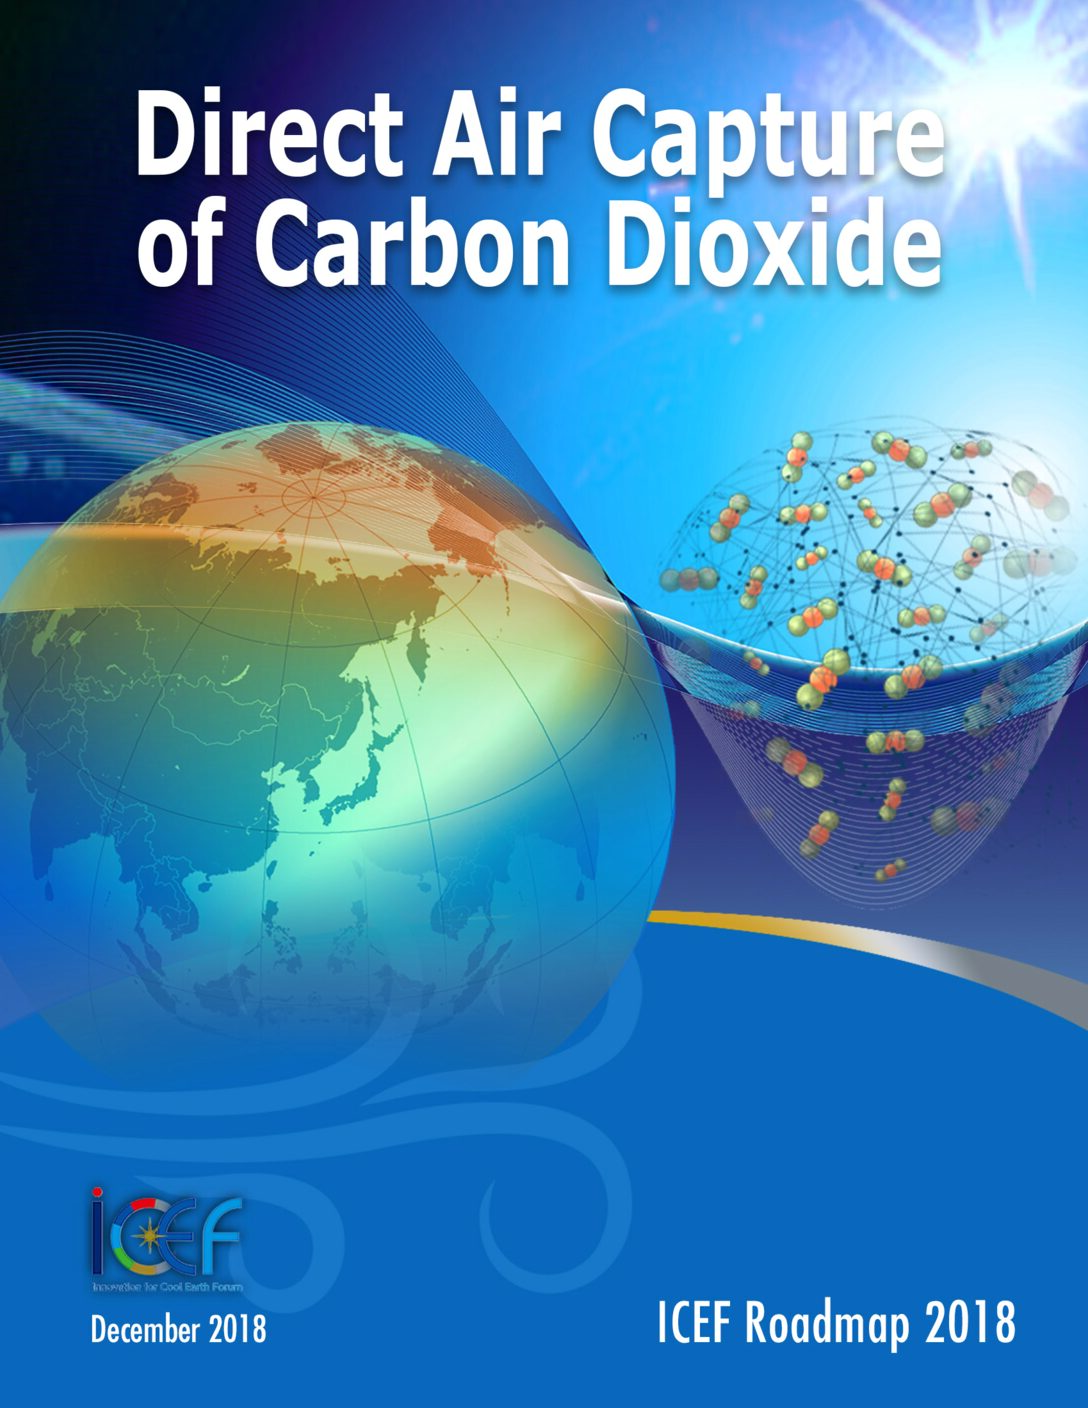 ICEF Roadmap (2018): Direct Air Capture of Carbon Dioxide